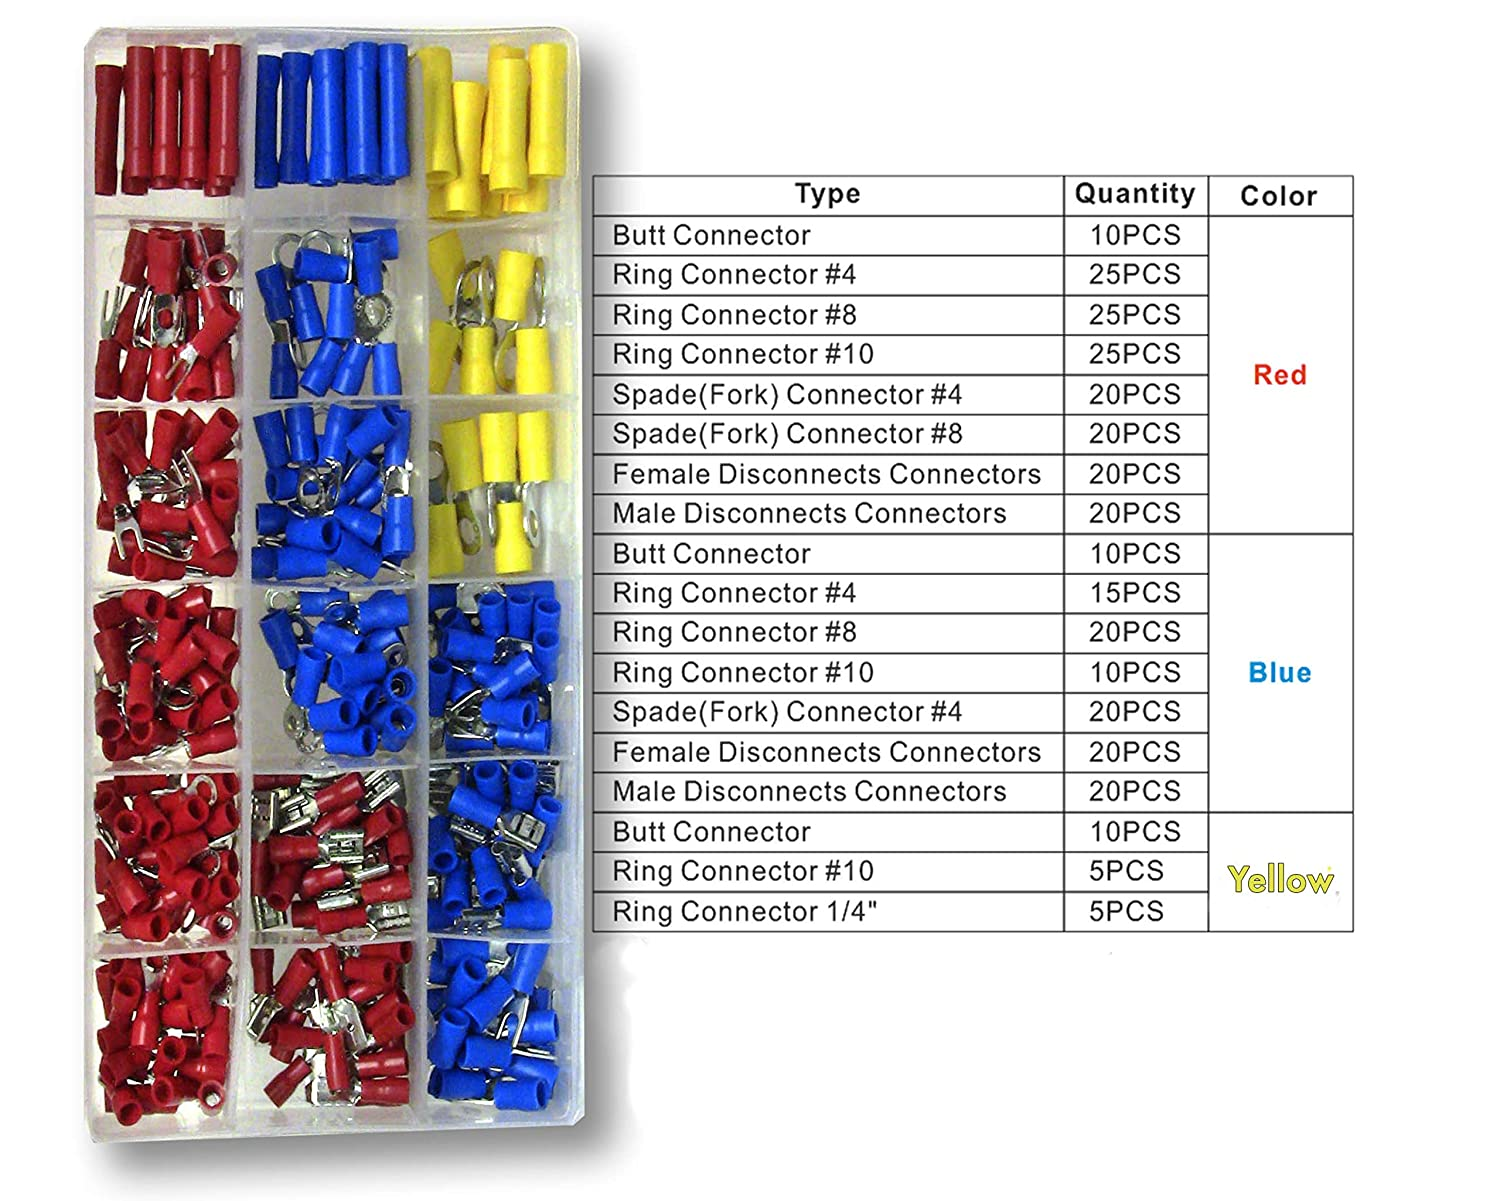 Insulated Electrical Wire Crimp Connectors Fork Connect /& Protect with 300 Pcs of Copper Ring Male Female Disconnects AWG 10-24 for Automotive Multiuse Seneuri PVC-300AC Wire Terminals by Seneurum Butt Spade